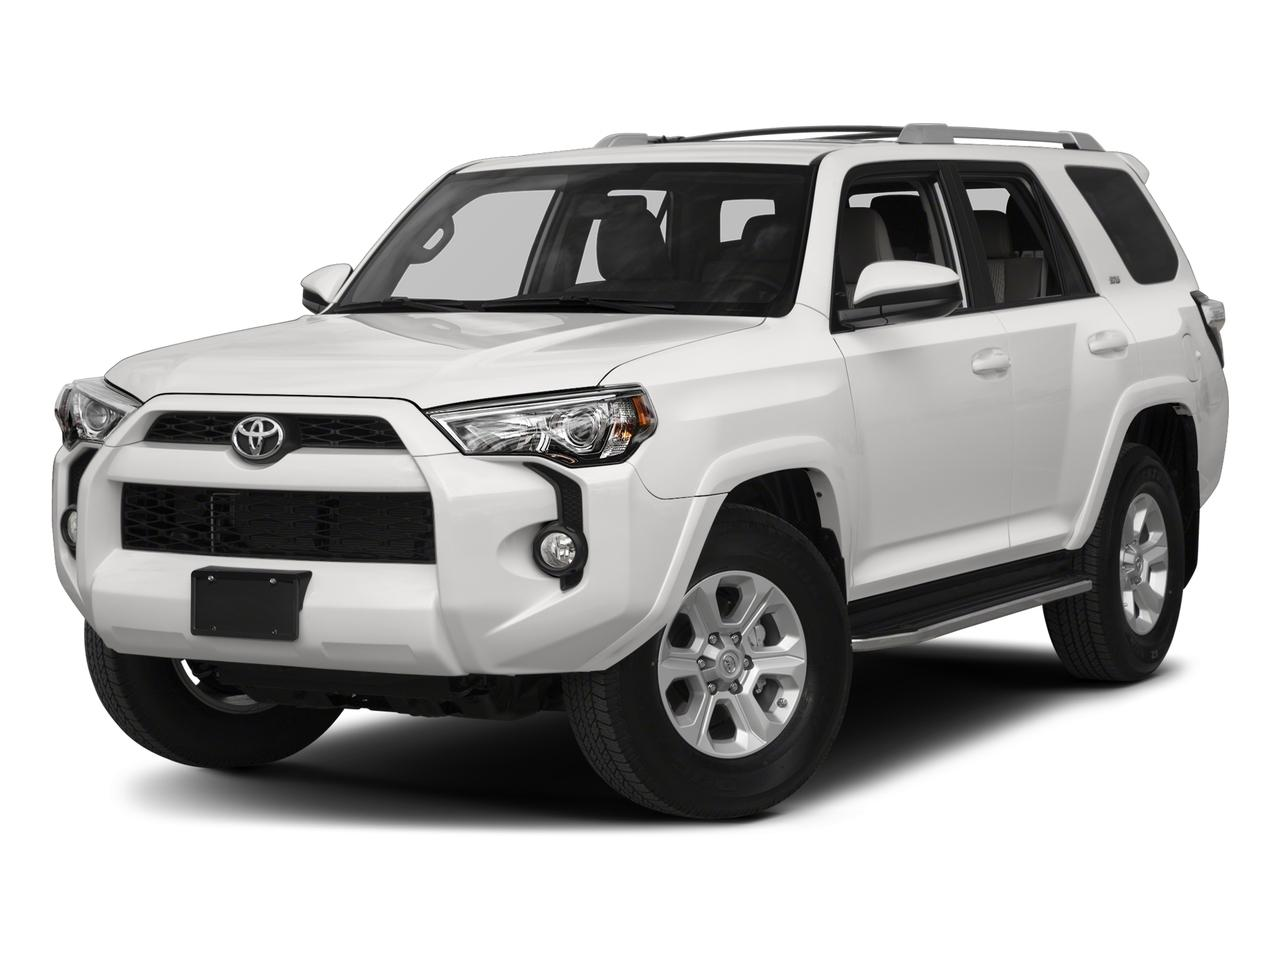 2017 Toyota 4Runner Vehicle Photo in Broussard, LA 70518